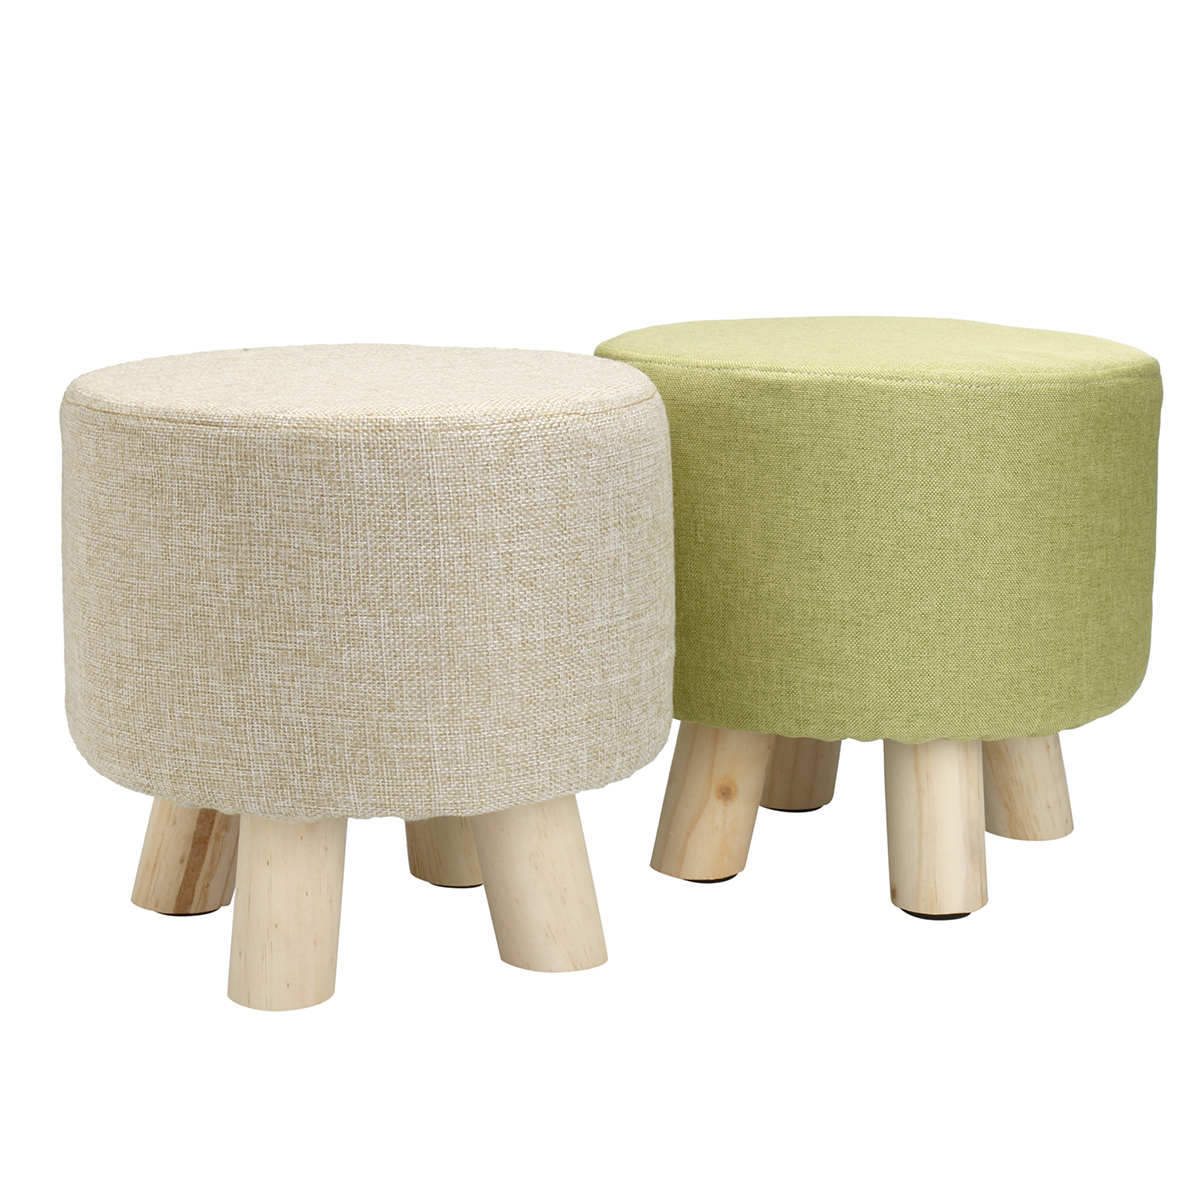 Living Room Pouffe Chairs Sofa Ottoman Foot Stool Bedroom Hallway Chair